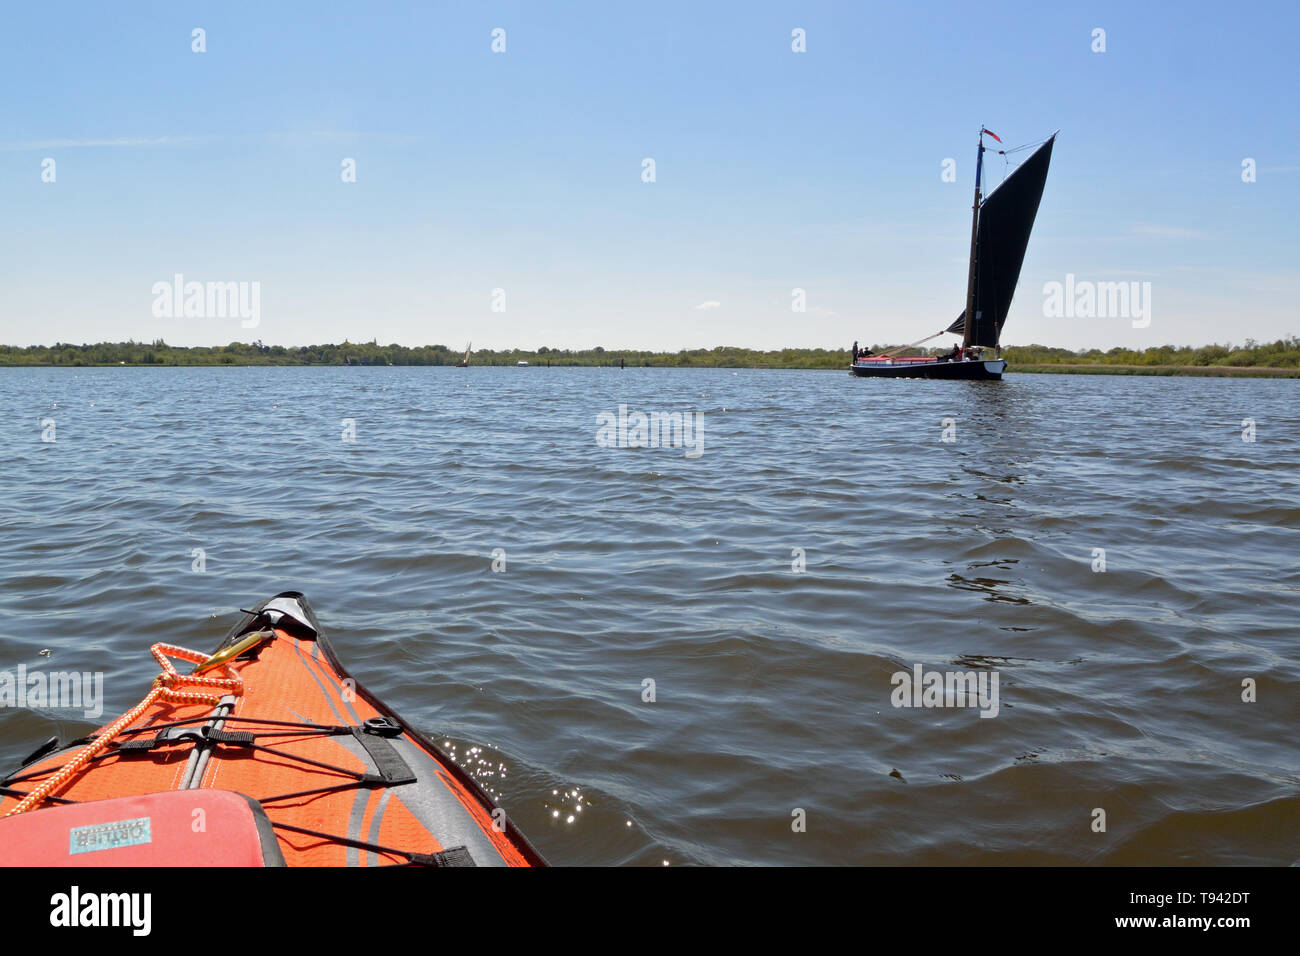 Historic trading wherry Albion under sail on Barton Broad, Broads National Park, Norfolk, UK Stock Photo